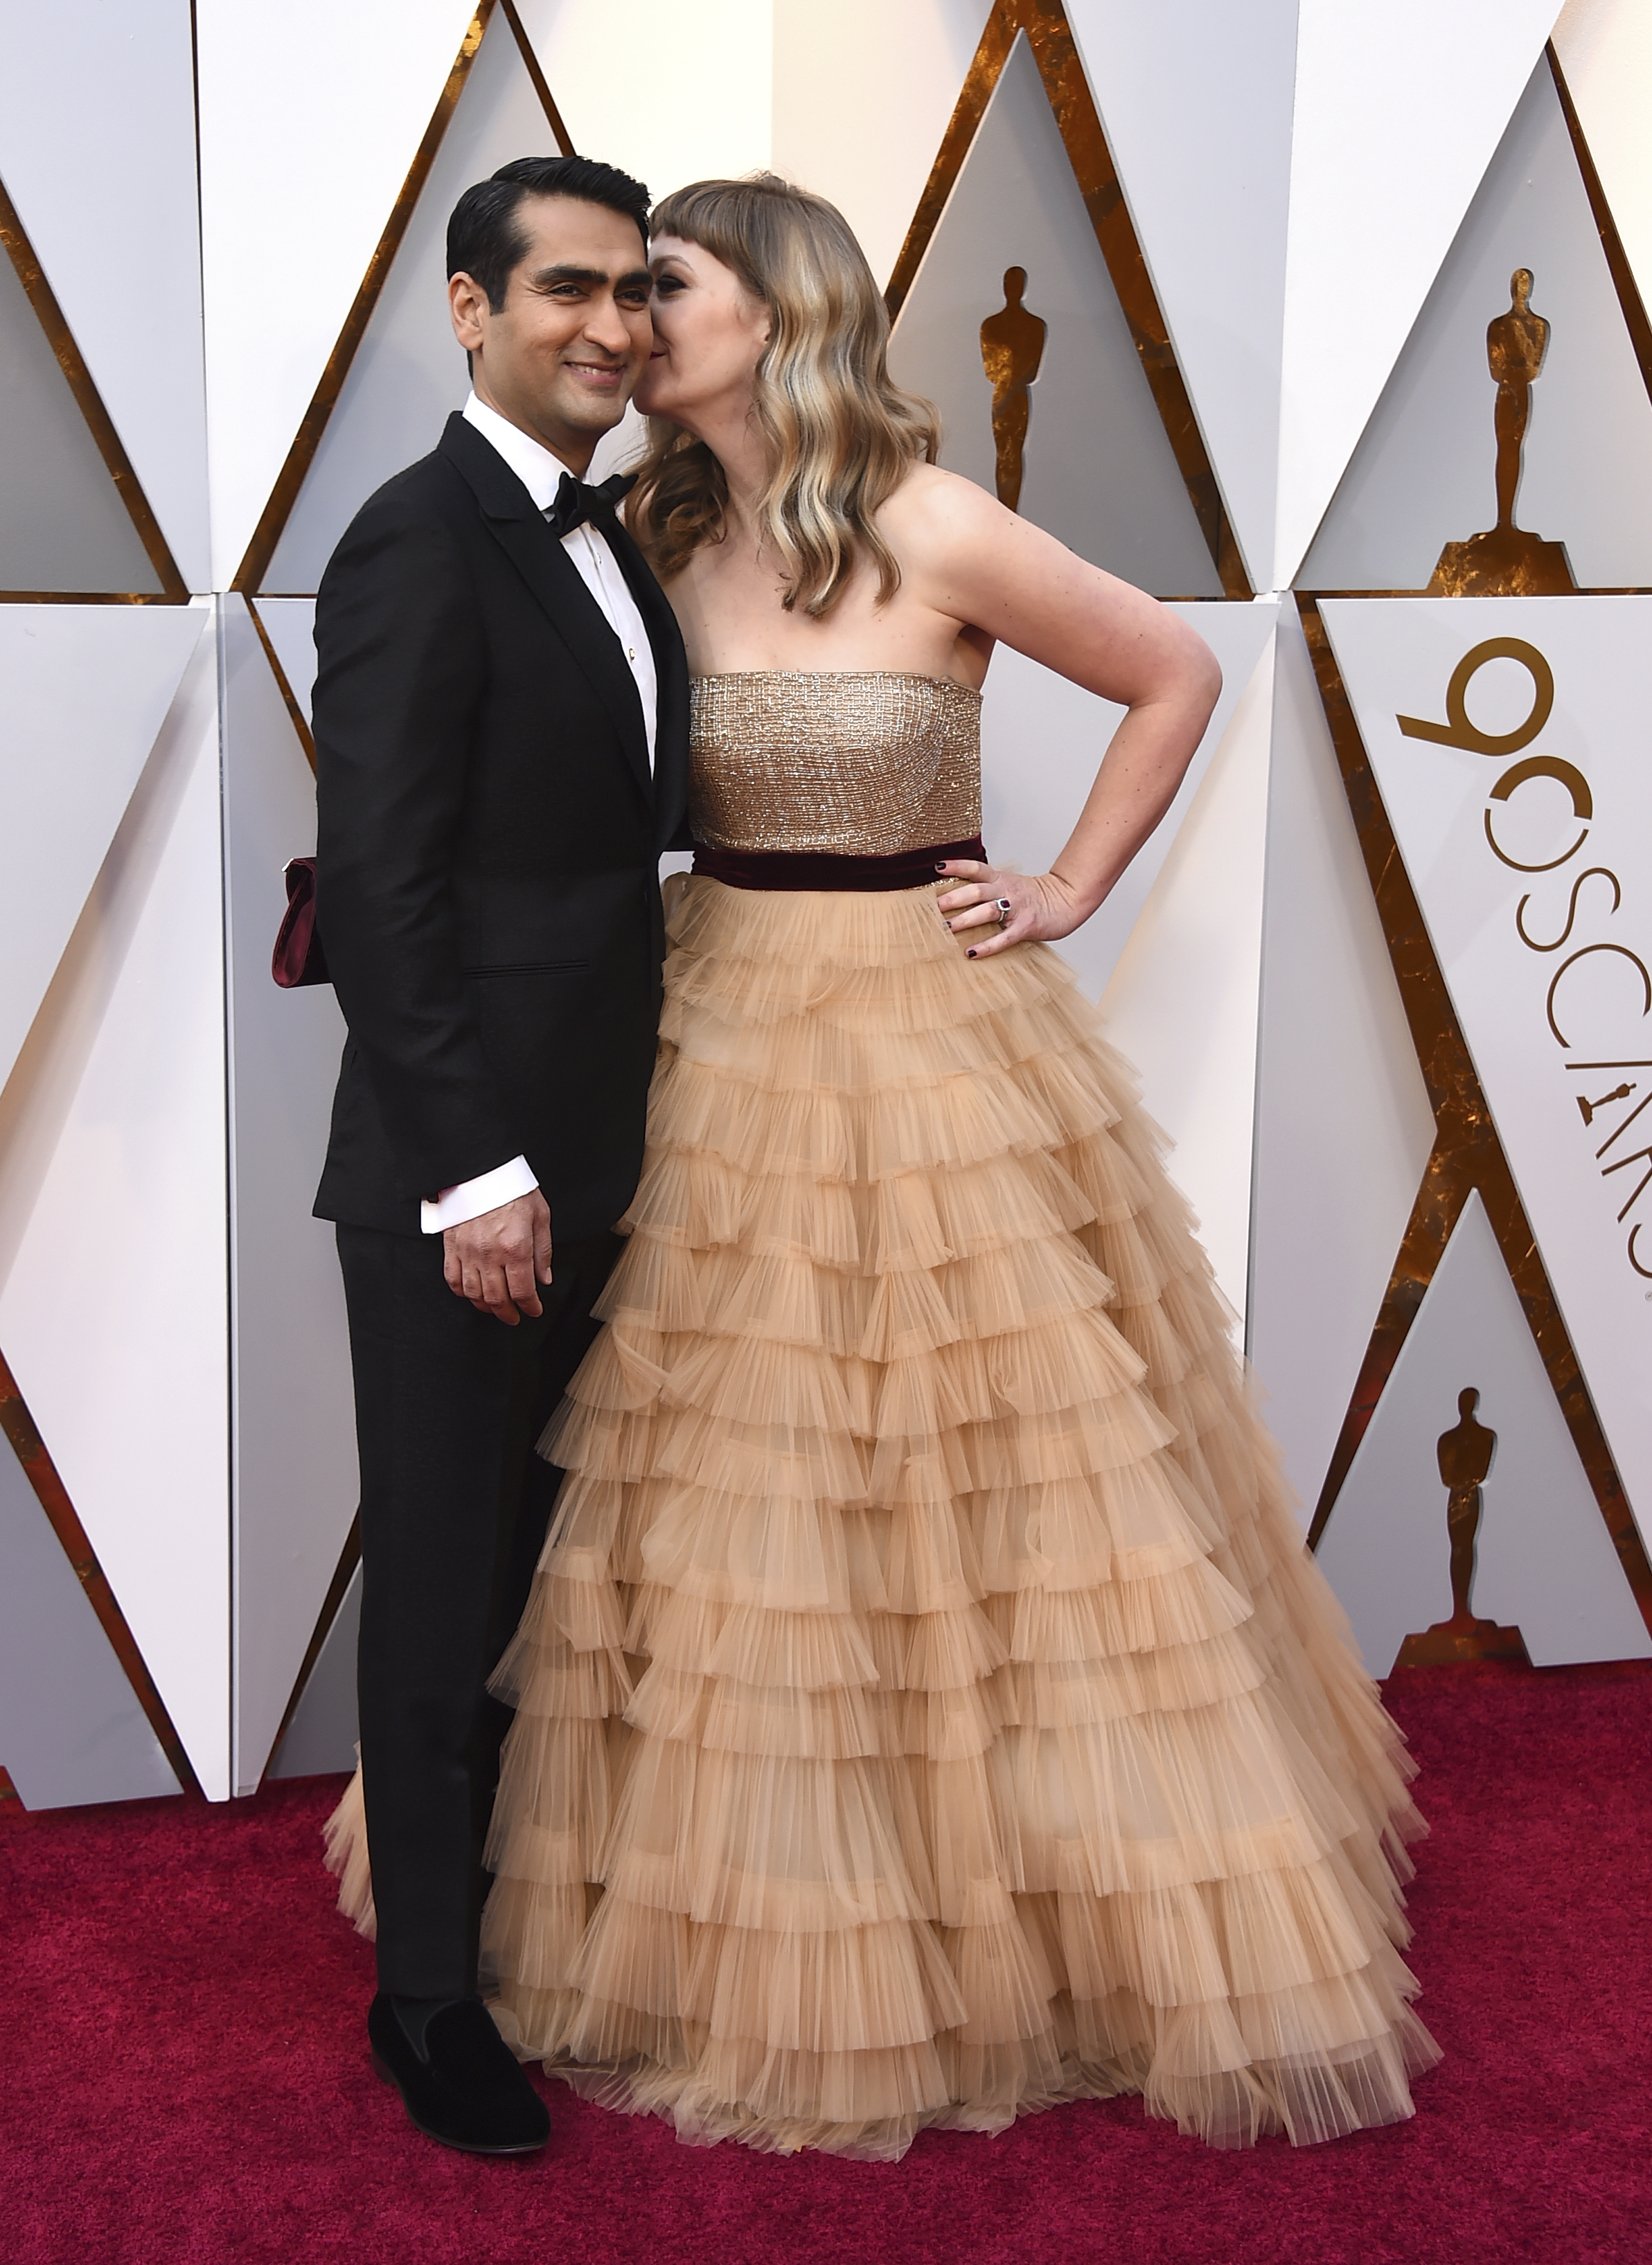 "<div class=""meta image-caption""><div class=""origin-logo origin-image none""><span>none</span></div><span class=""caption-text"">Kumail Nanjiani, left, and Emily V. Gordon, nominated for writing ''The Big Sick,'' arrive at the Oscars on Sunday, March 4, 2018, at the Dolby Theatre in Los Angeles. (Jordan Strauss/Invision/AP)</span></div>"